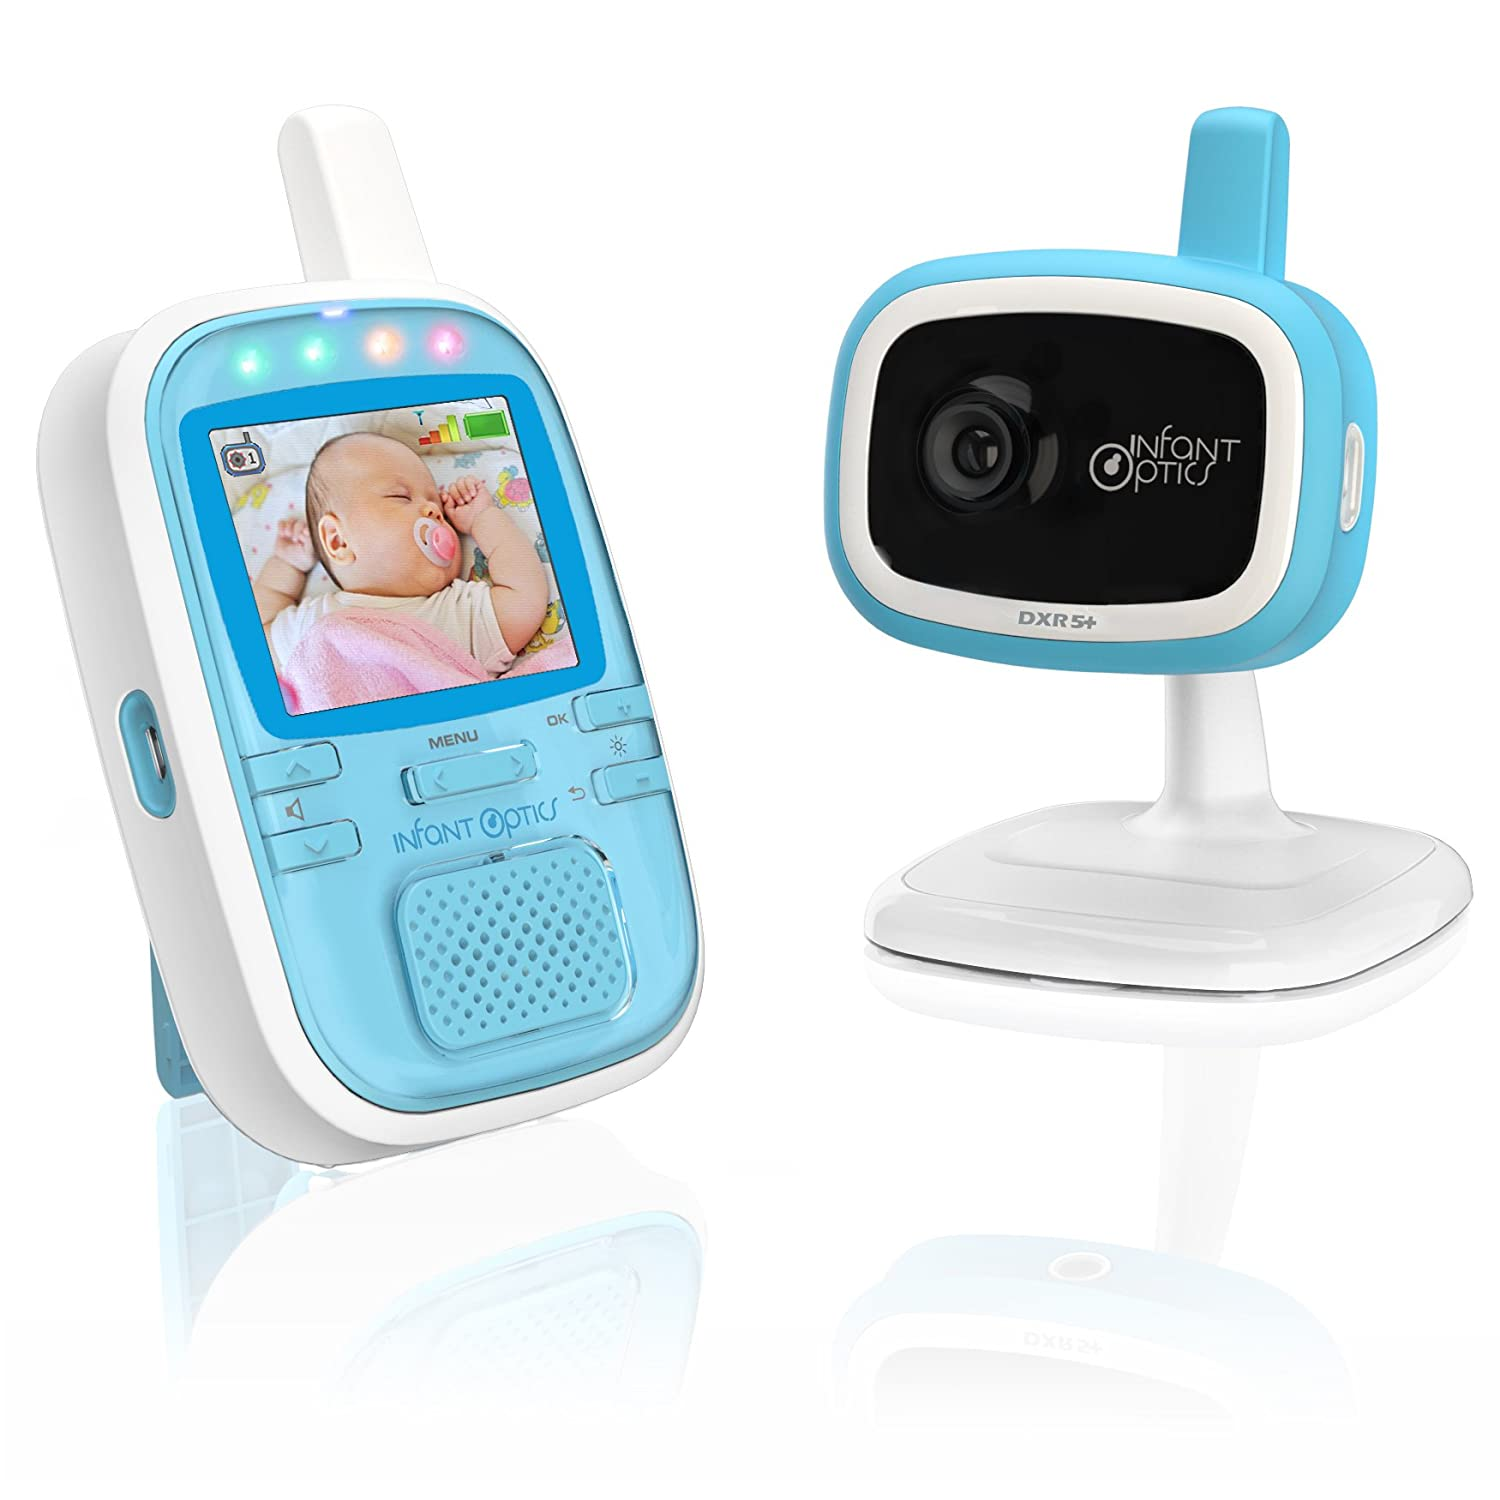 Infant Optics DXR-5+ Portable Video Baby Monitor, Blue/White